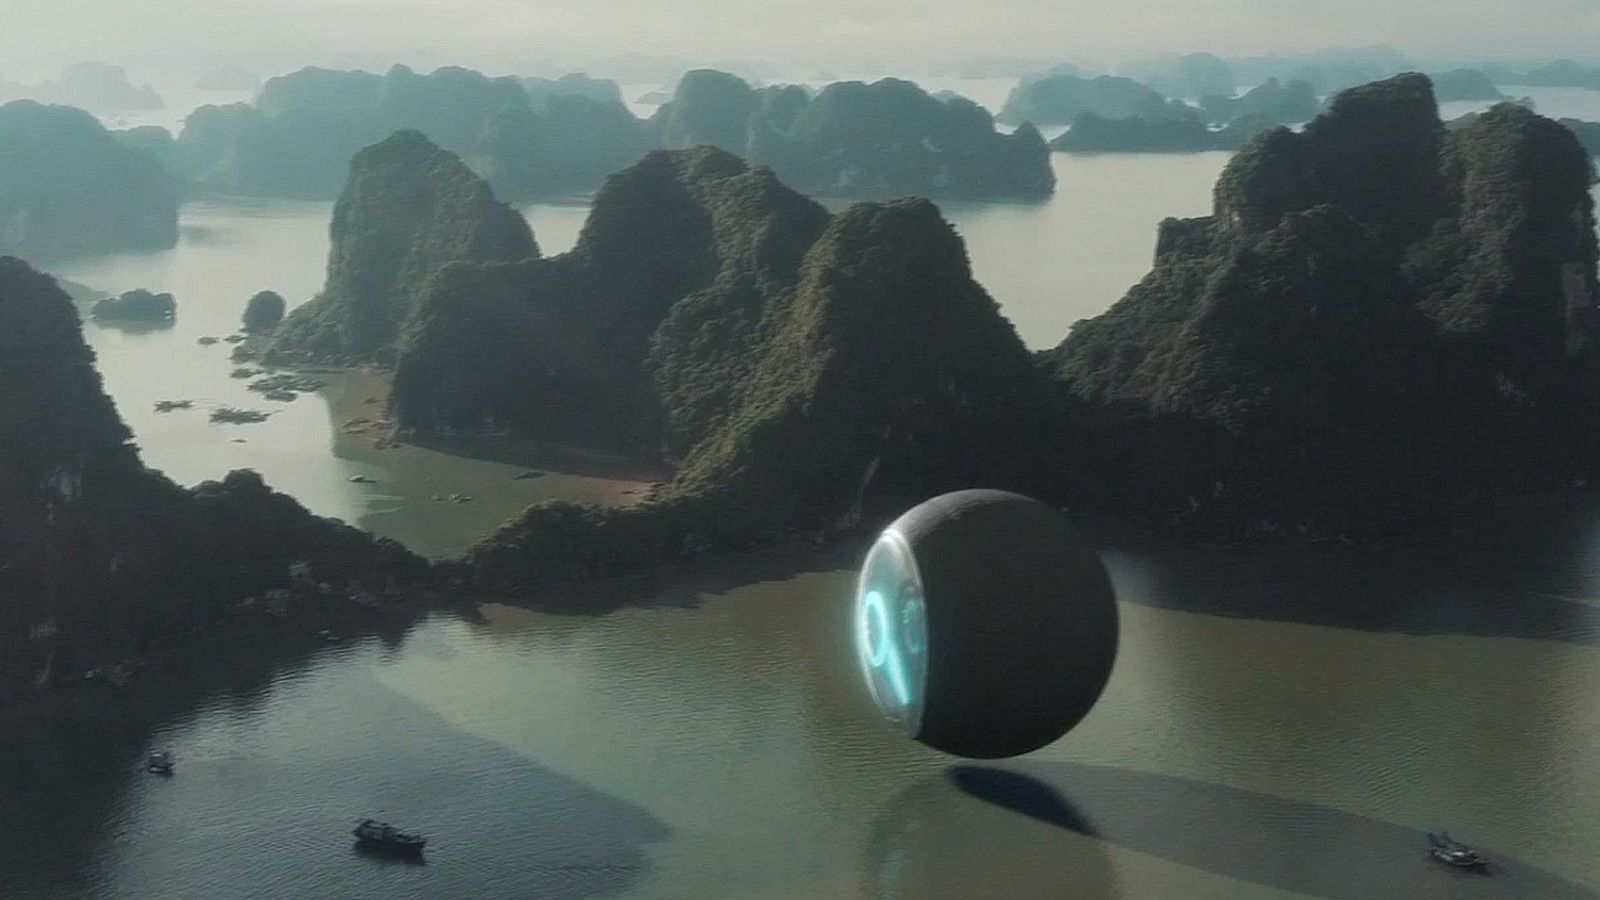 👽 Giant Sphere UFO Spotted In Thailand